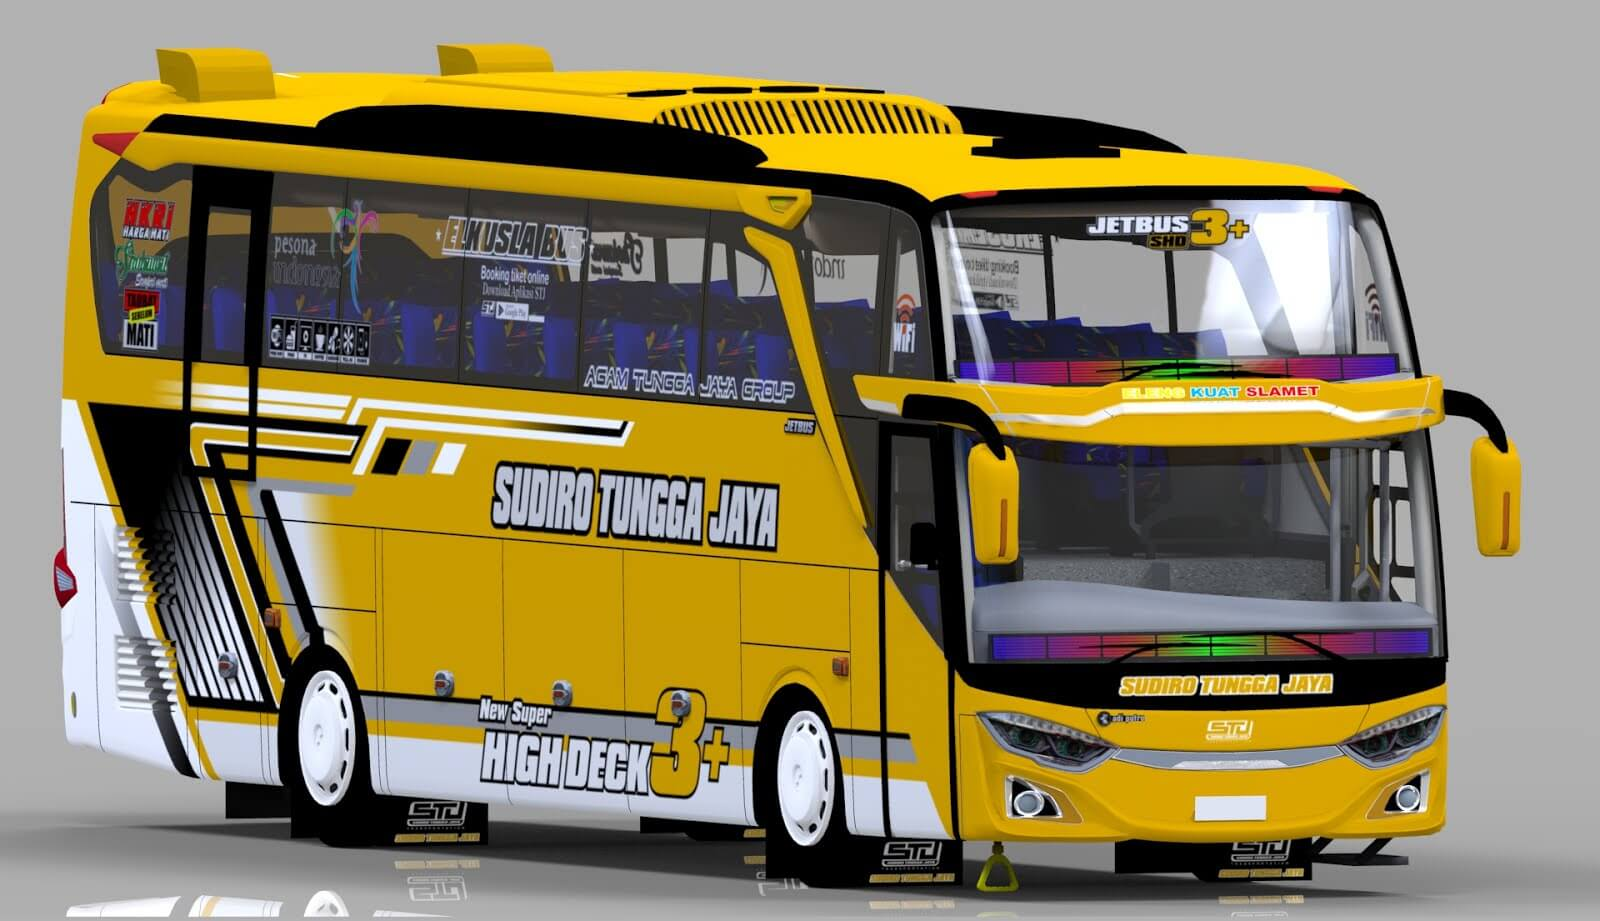 Download JetBus 3+ Facelift & Voyager Mod for Bus Simulator Indonesia, JetBus 3+ Facelift & Voyager, BUSSID mod, JB SDD 3+ Voyager, JB3+ Facelift, Jb3+ Facelift Bus Mod for bussid, JetBus 3+ Facelift & Voyager, JetBus 3+ Voyager Mod, JetBus 3+ Voyager Mod for BUSSID, JETBUS SDD 3+ VOYAGER, JETBUS SDD 3+ VOYAGER Mod for BUSSID, SGCArena, ZTOM